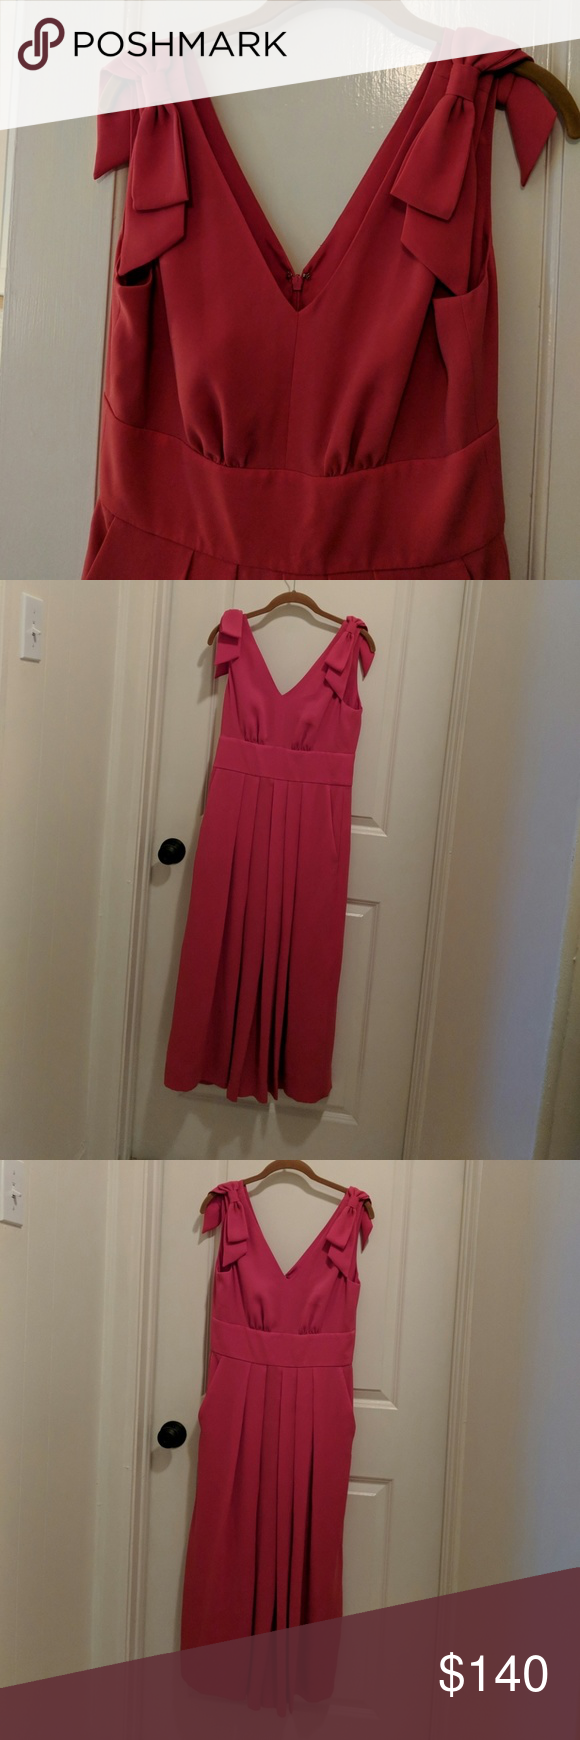 576ed0f95f0 J Crew Drapey Tie-Shoulder Jumpsuit in hot pink Fits true to size ...